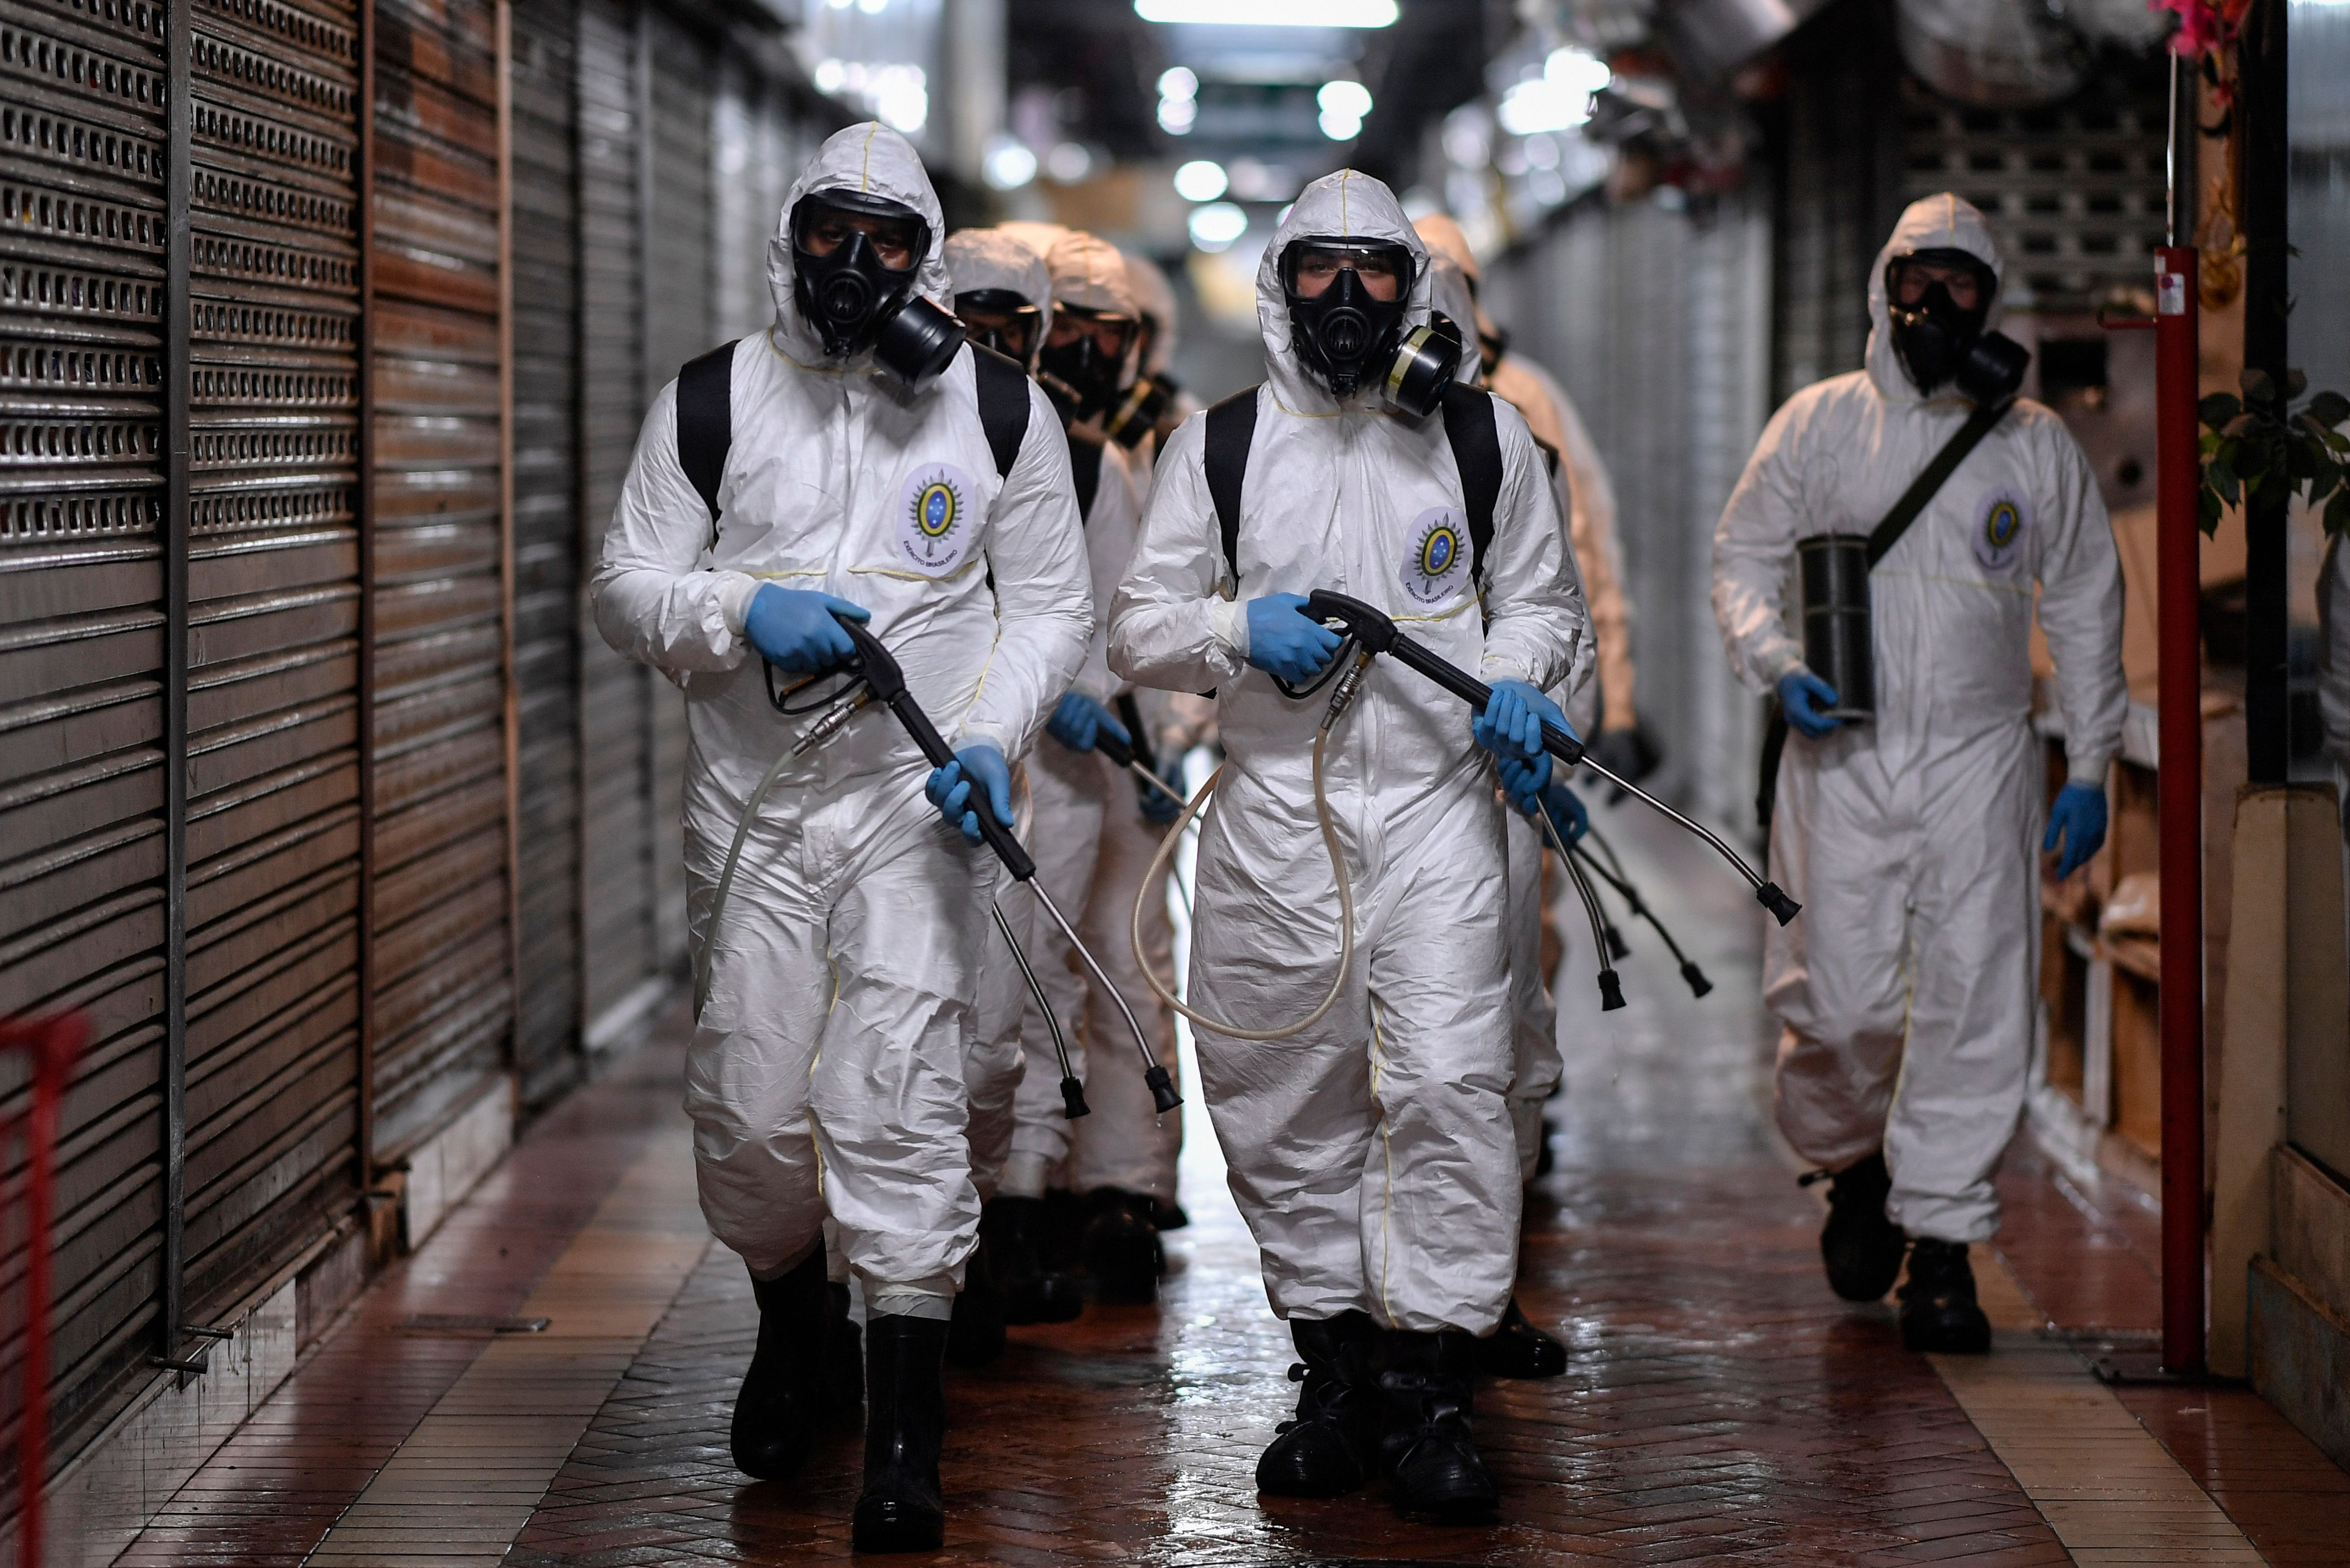 Soldiers from the 4th Military Region of the Brazilian Armed Forces take part in the cleaning and disinfection of the Municipal Market in the Belo Horizonte in Minas Gerais on August 18.